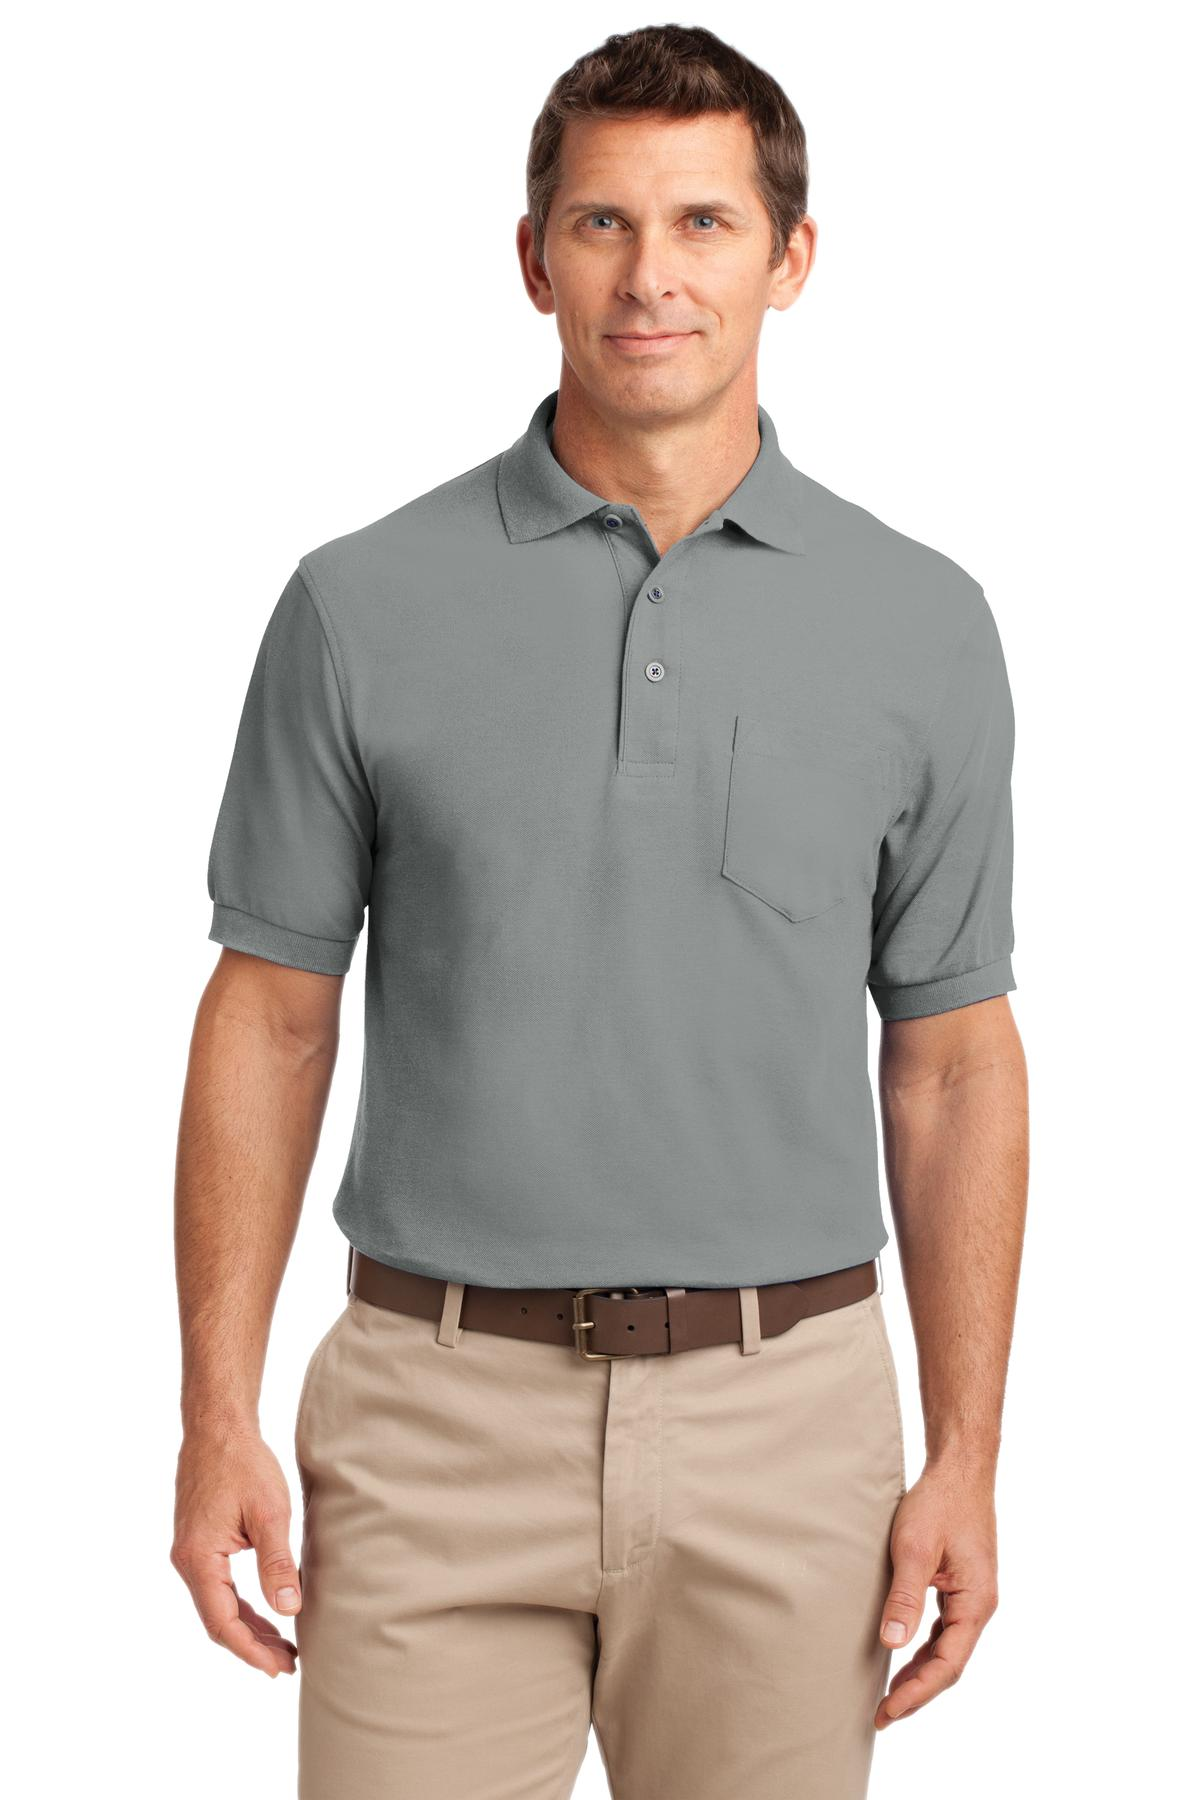 Celadon Blue Port Authority Stain-Release Polo.